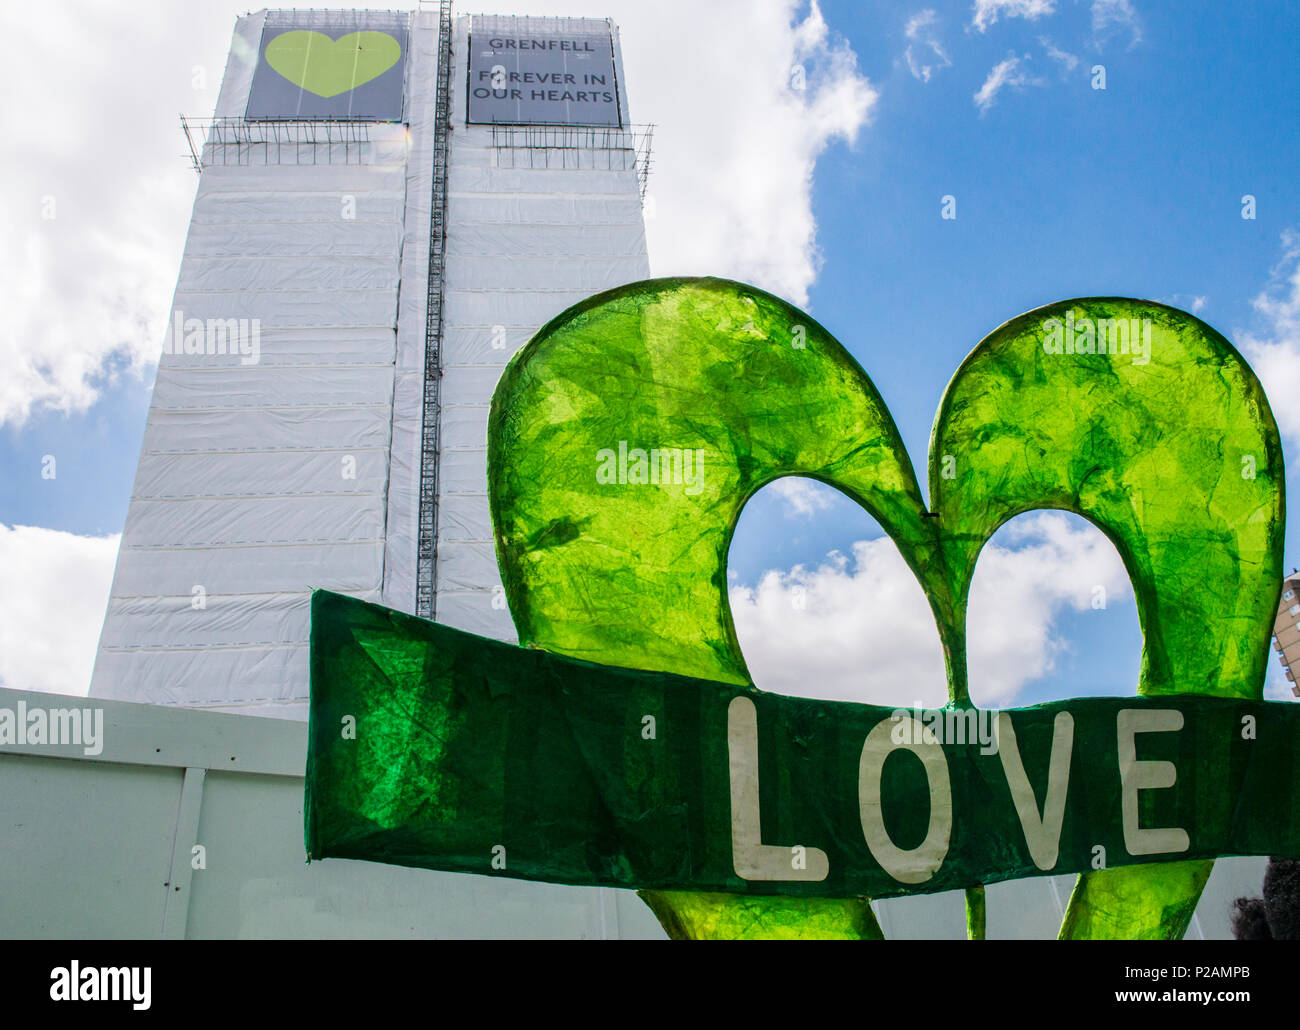 A giant banner with the word Love is left at the base of the Grenfell Tower to mark the anniversary of the fire, London, England, UK, 14th June 2018 - Stock Image